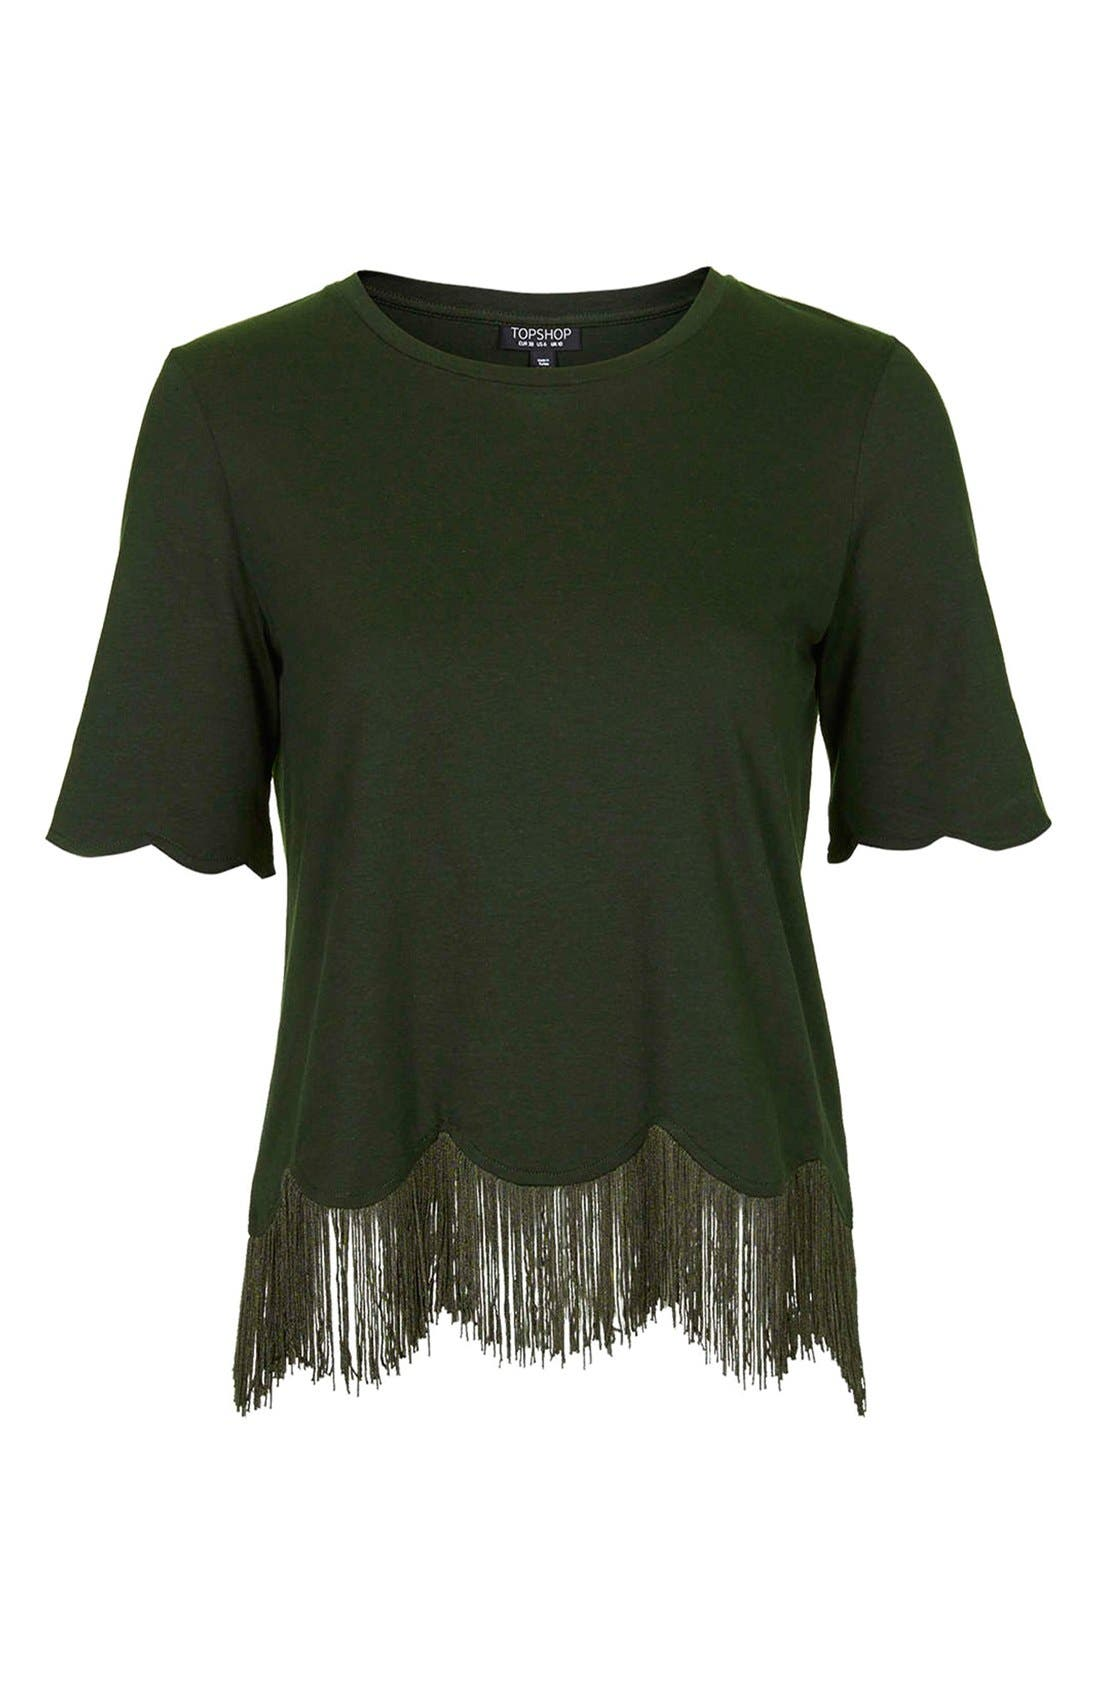 TOPSHOP, Fringe Scallop Tee, Alternate thumbnail 2, color, 301